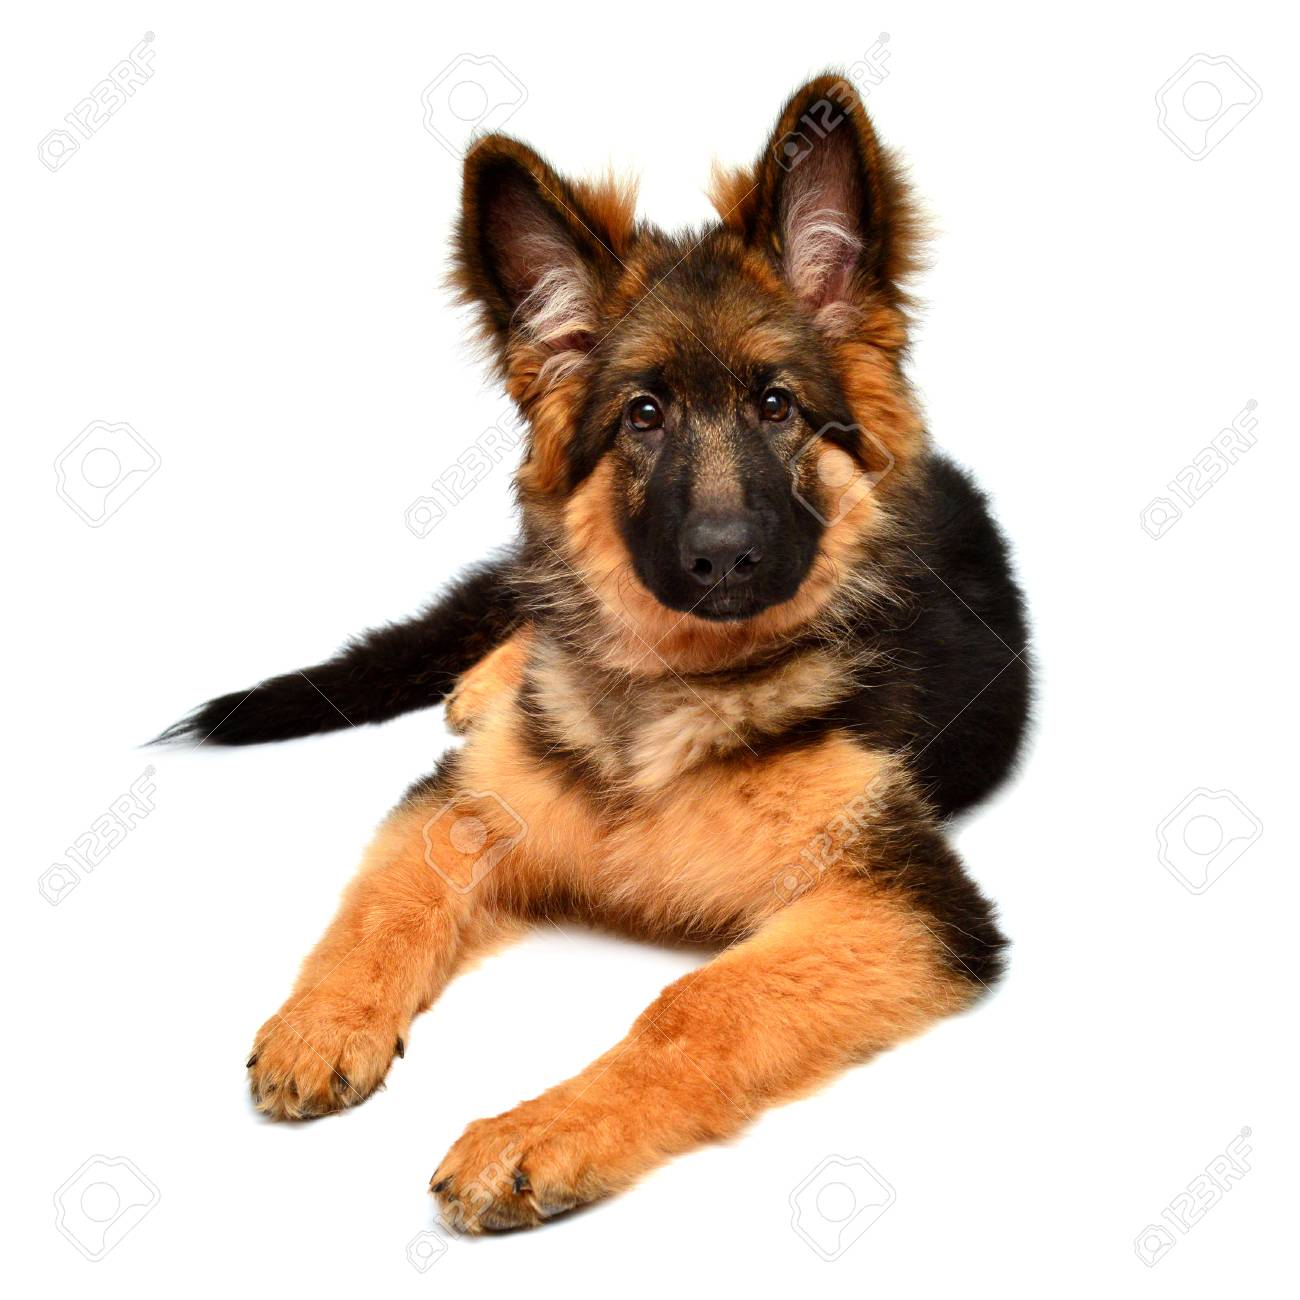 Fluffy German Shepherd Dog Isolated On White Background Puppy Stock Photo Picture And Royalty Free Image Image 95201065